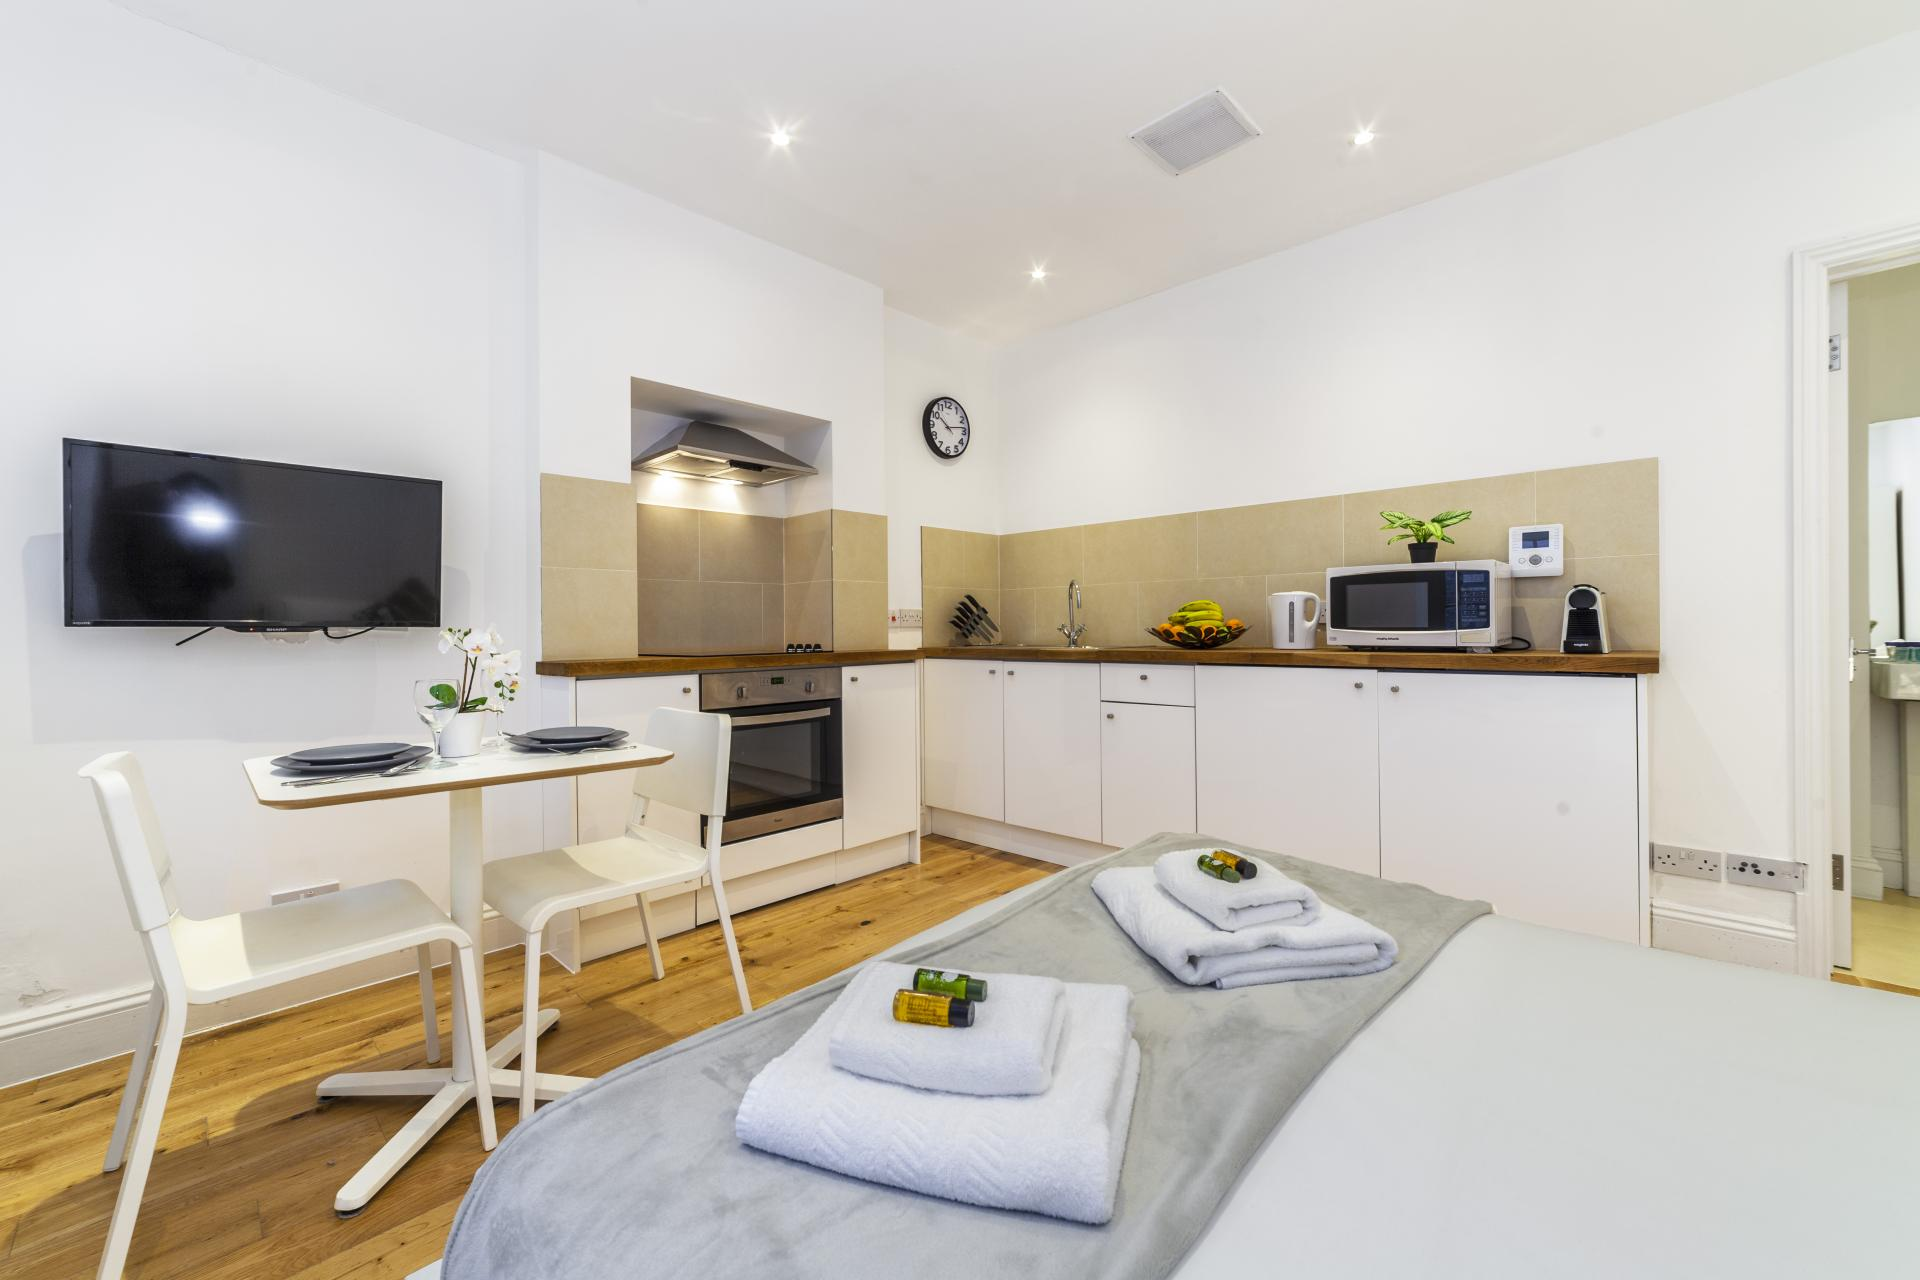 Kitchen diner at Devonshire Terrace Apartments, Bayswater, London